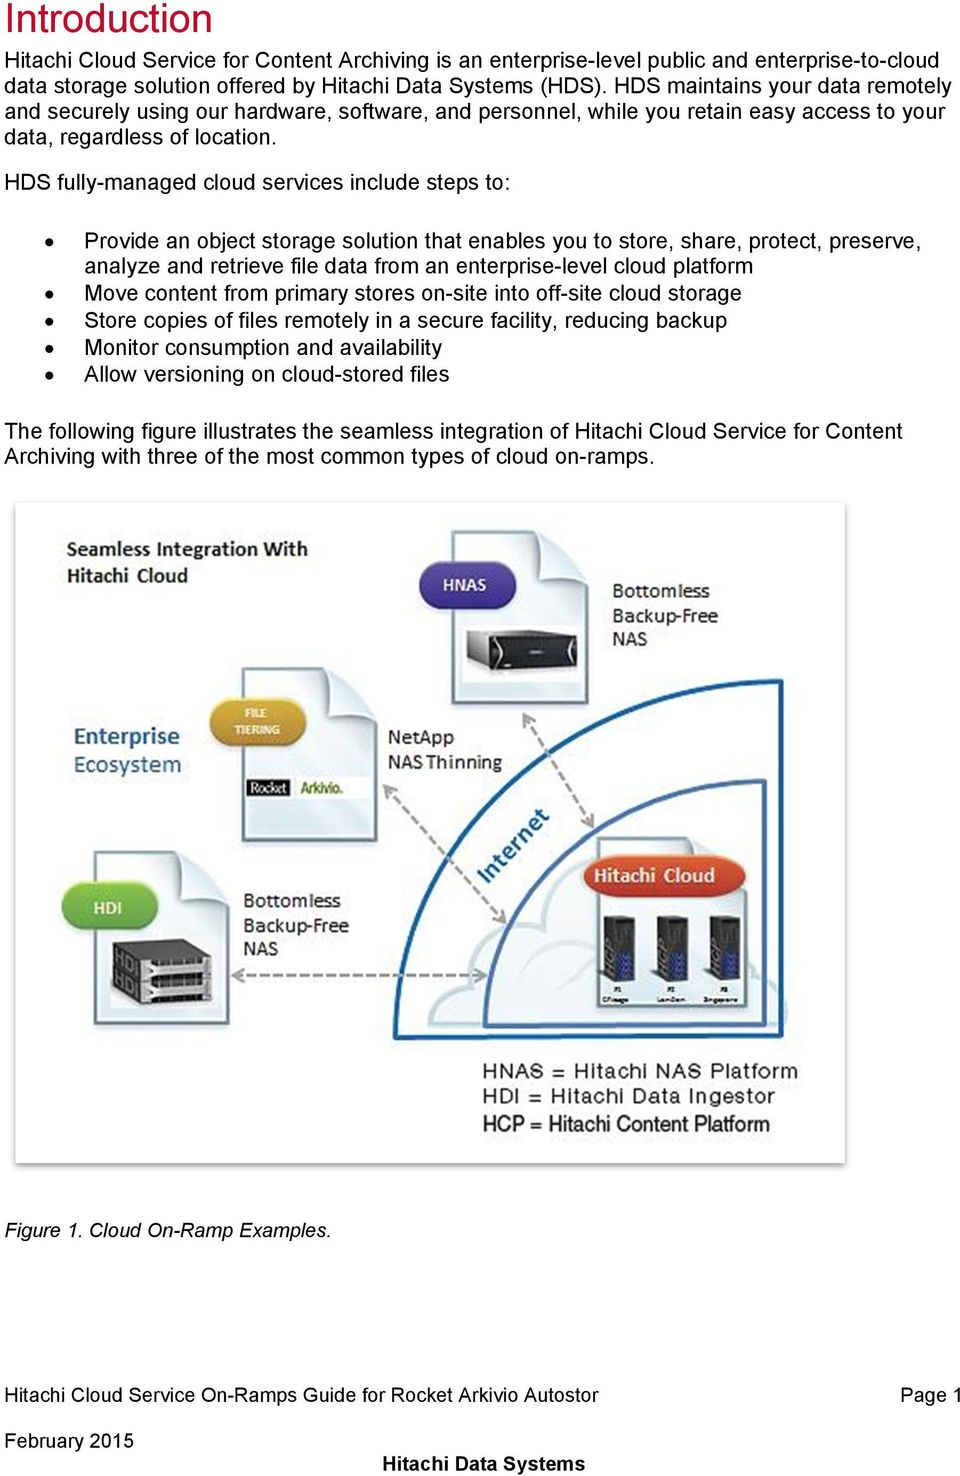 HDS fully-managed cloud services include steps to: Provide an object storage solution that enables you to store, share, protect, preserve, analyze and retrieve file data from an enterprise-level